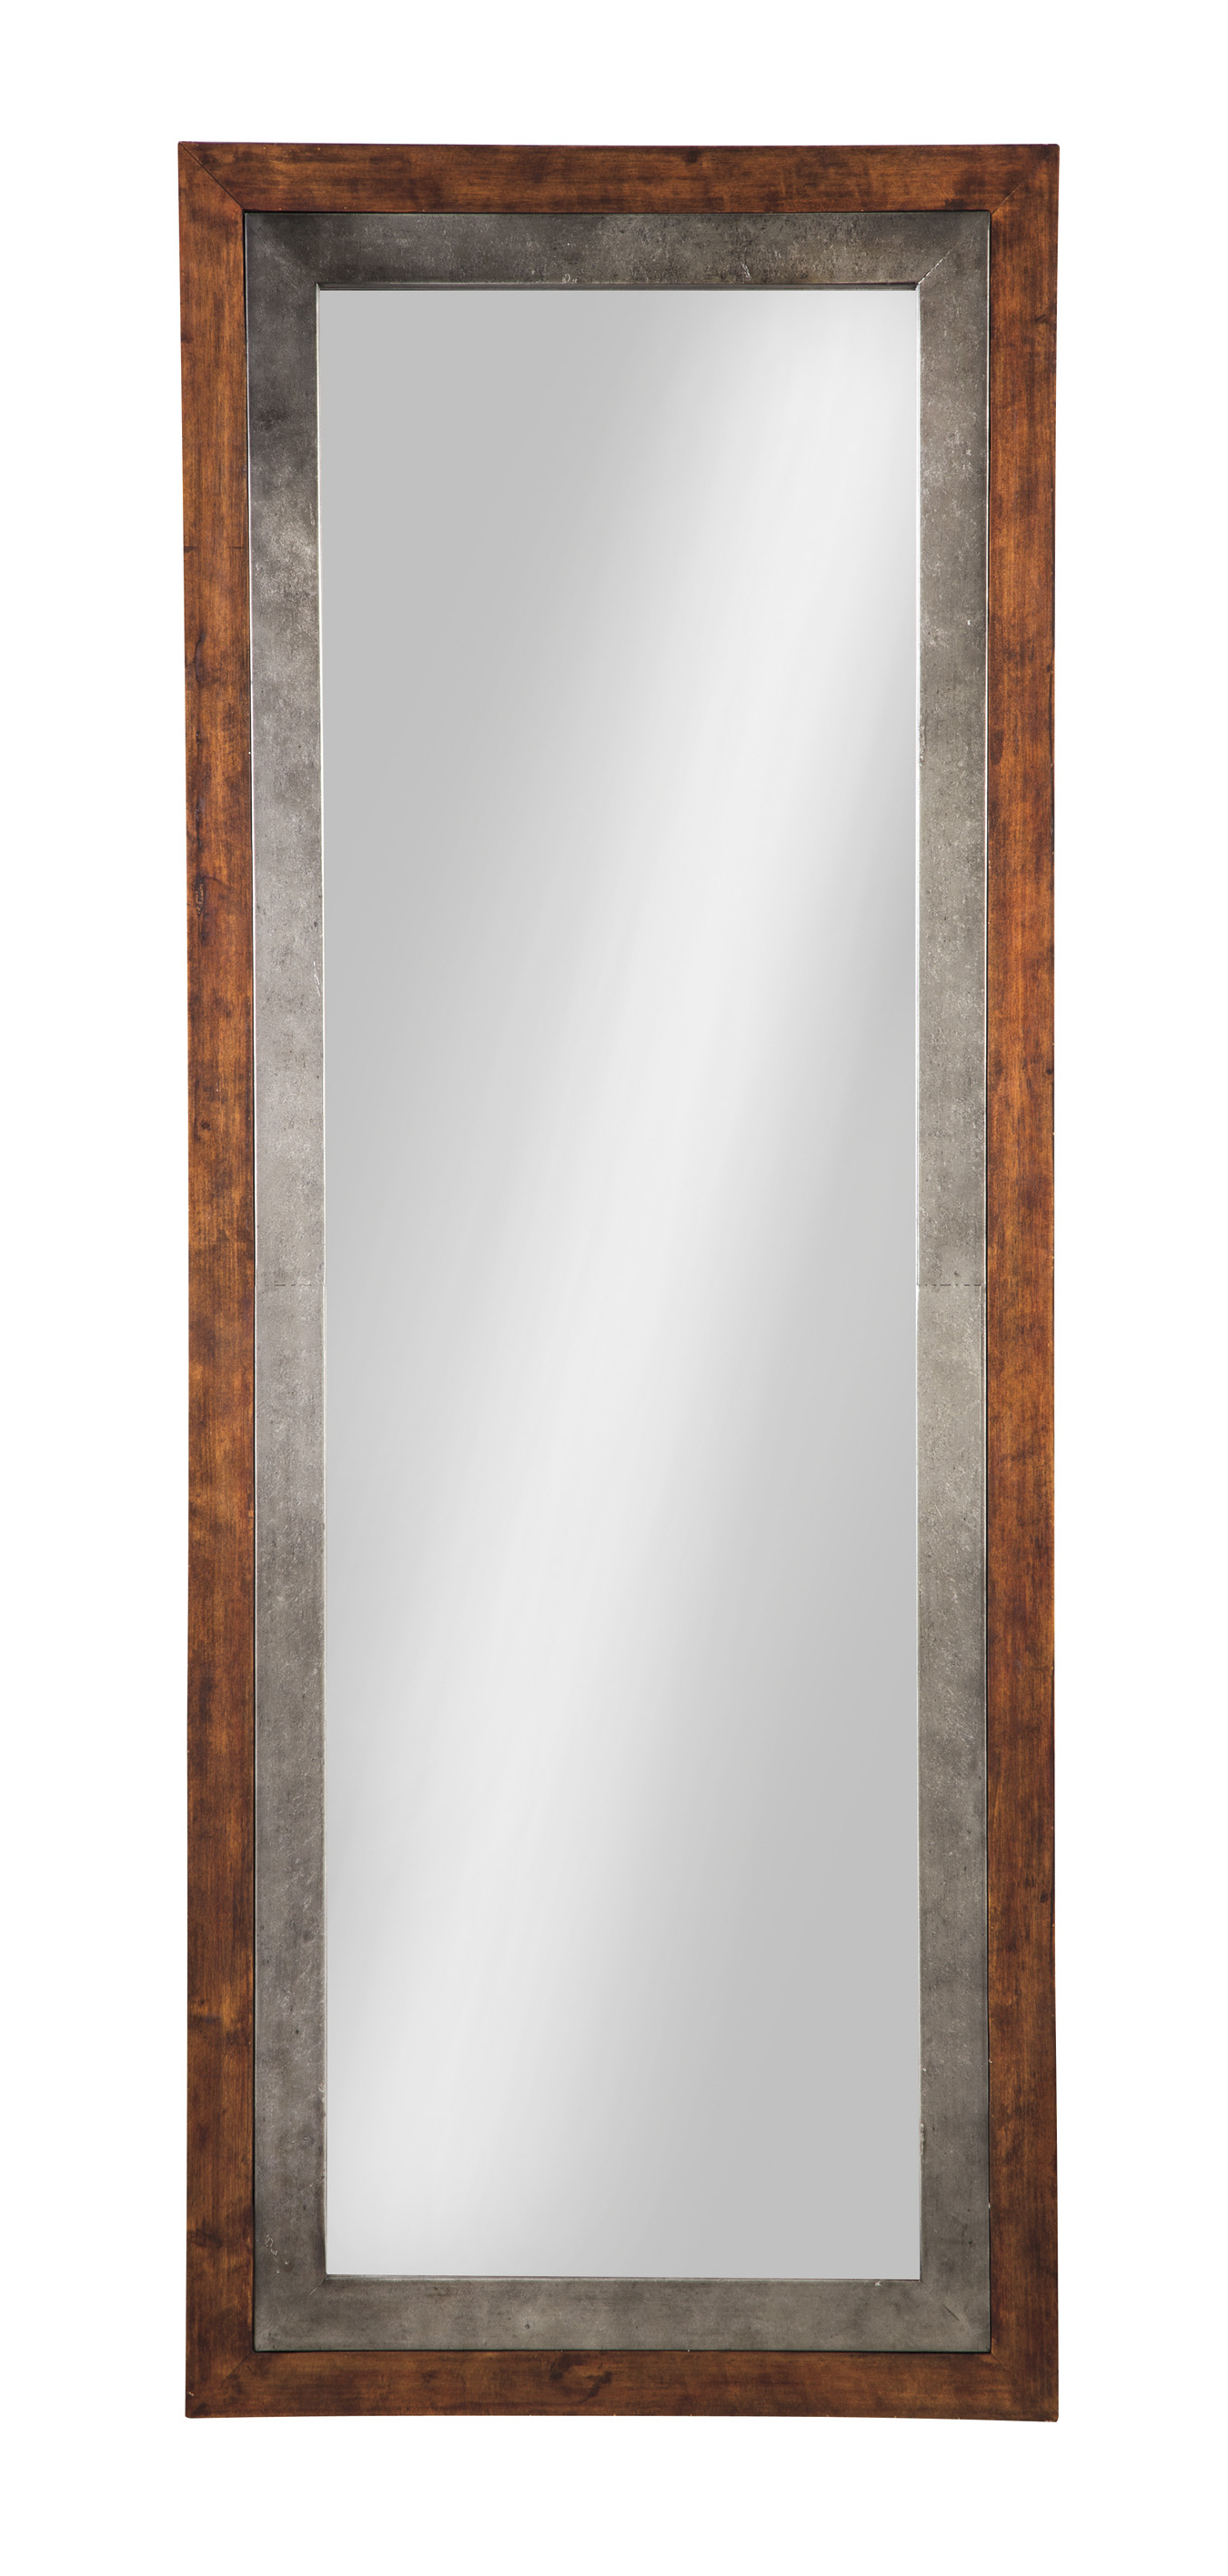 The Red Barn Furniture Store Niah Brown/silver Accent Mirror In Well Liked Silver Frame Accent Mirrors (View 19 of 20)